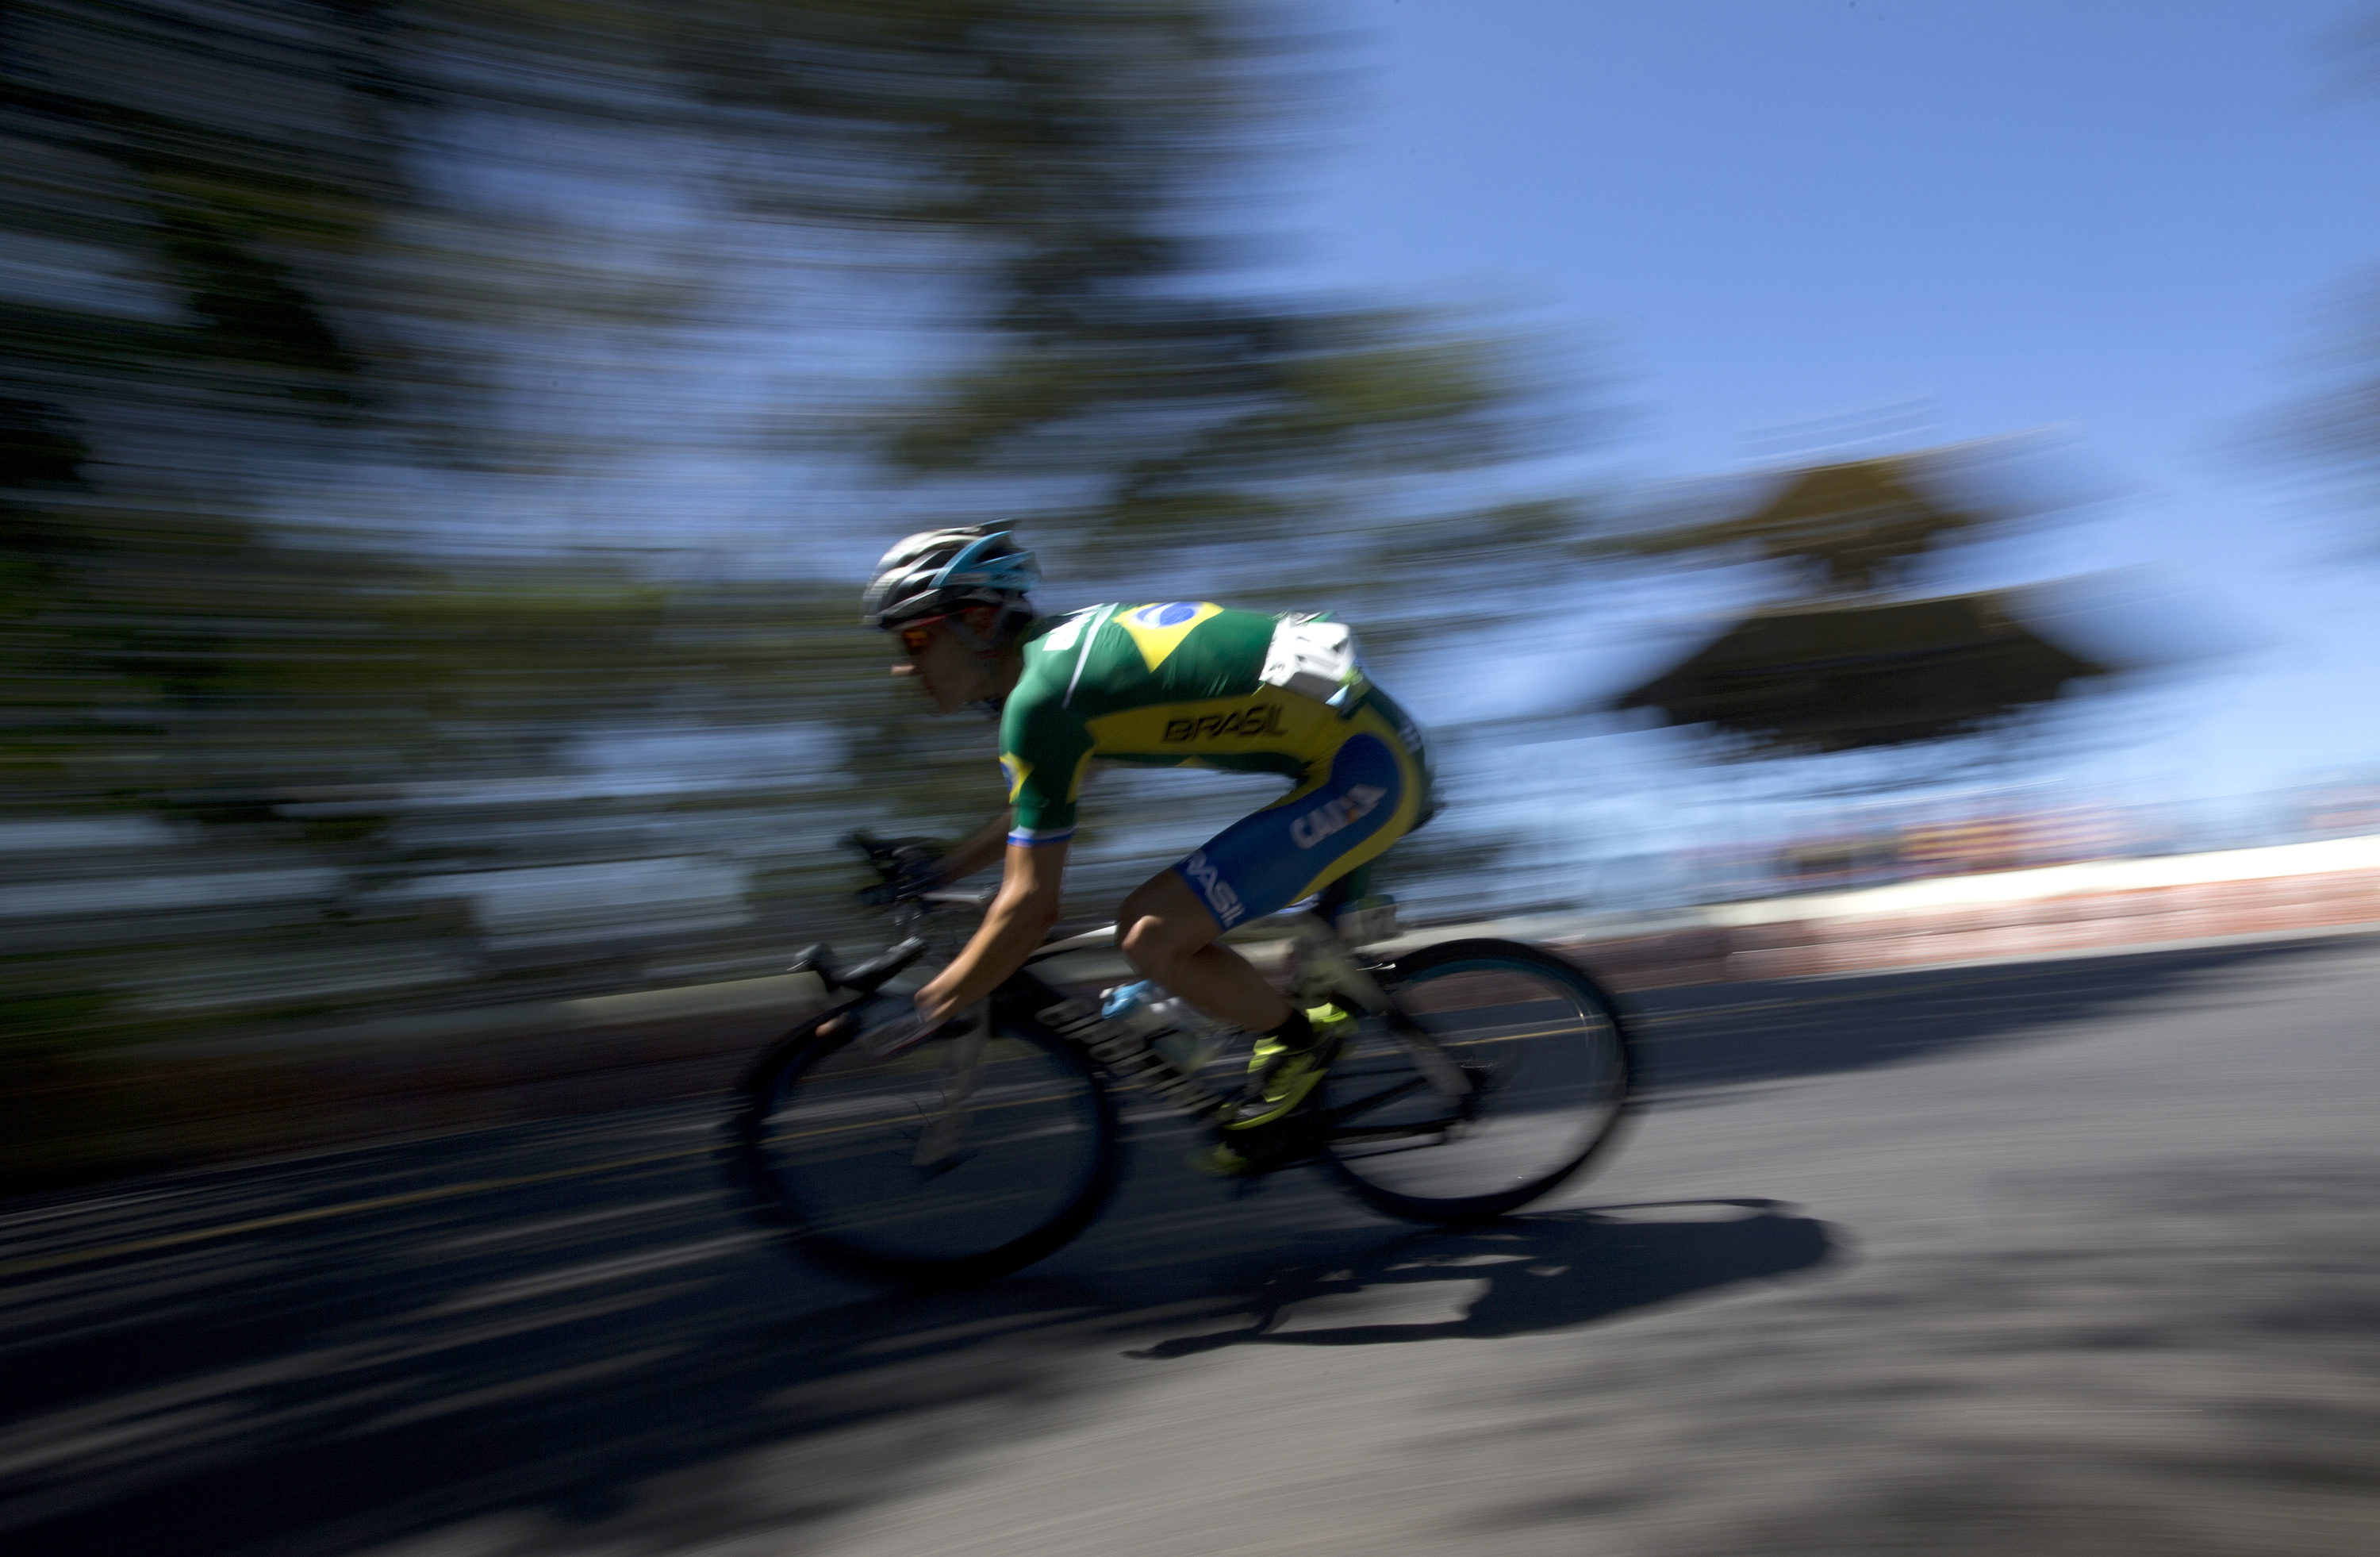 A Brazilian athlete competes during the International Road Cycling Challenge test event ahead the Rio 2016 Olympic Games in Rio de Janeiro, Brazil, Sunday, Aug. 16, 2015. (AP Photo/Silvia Izquierdo)